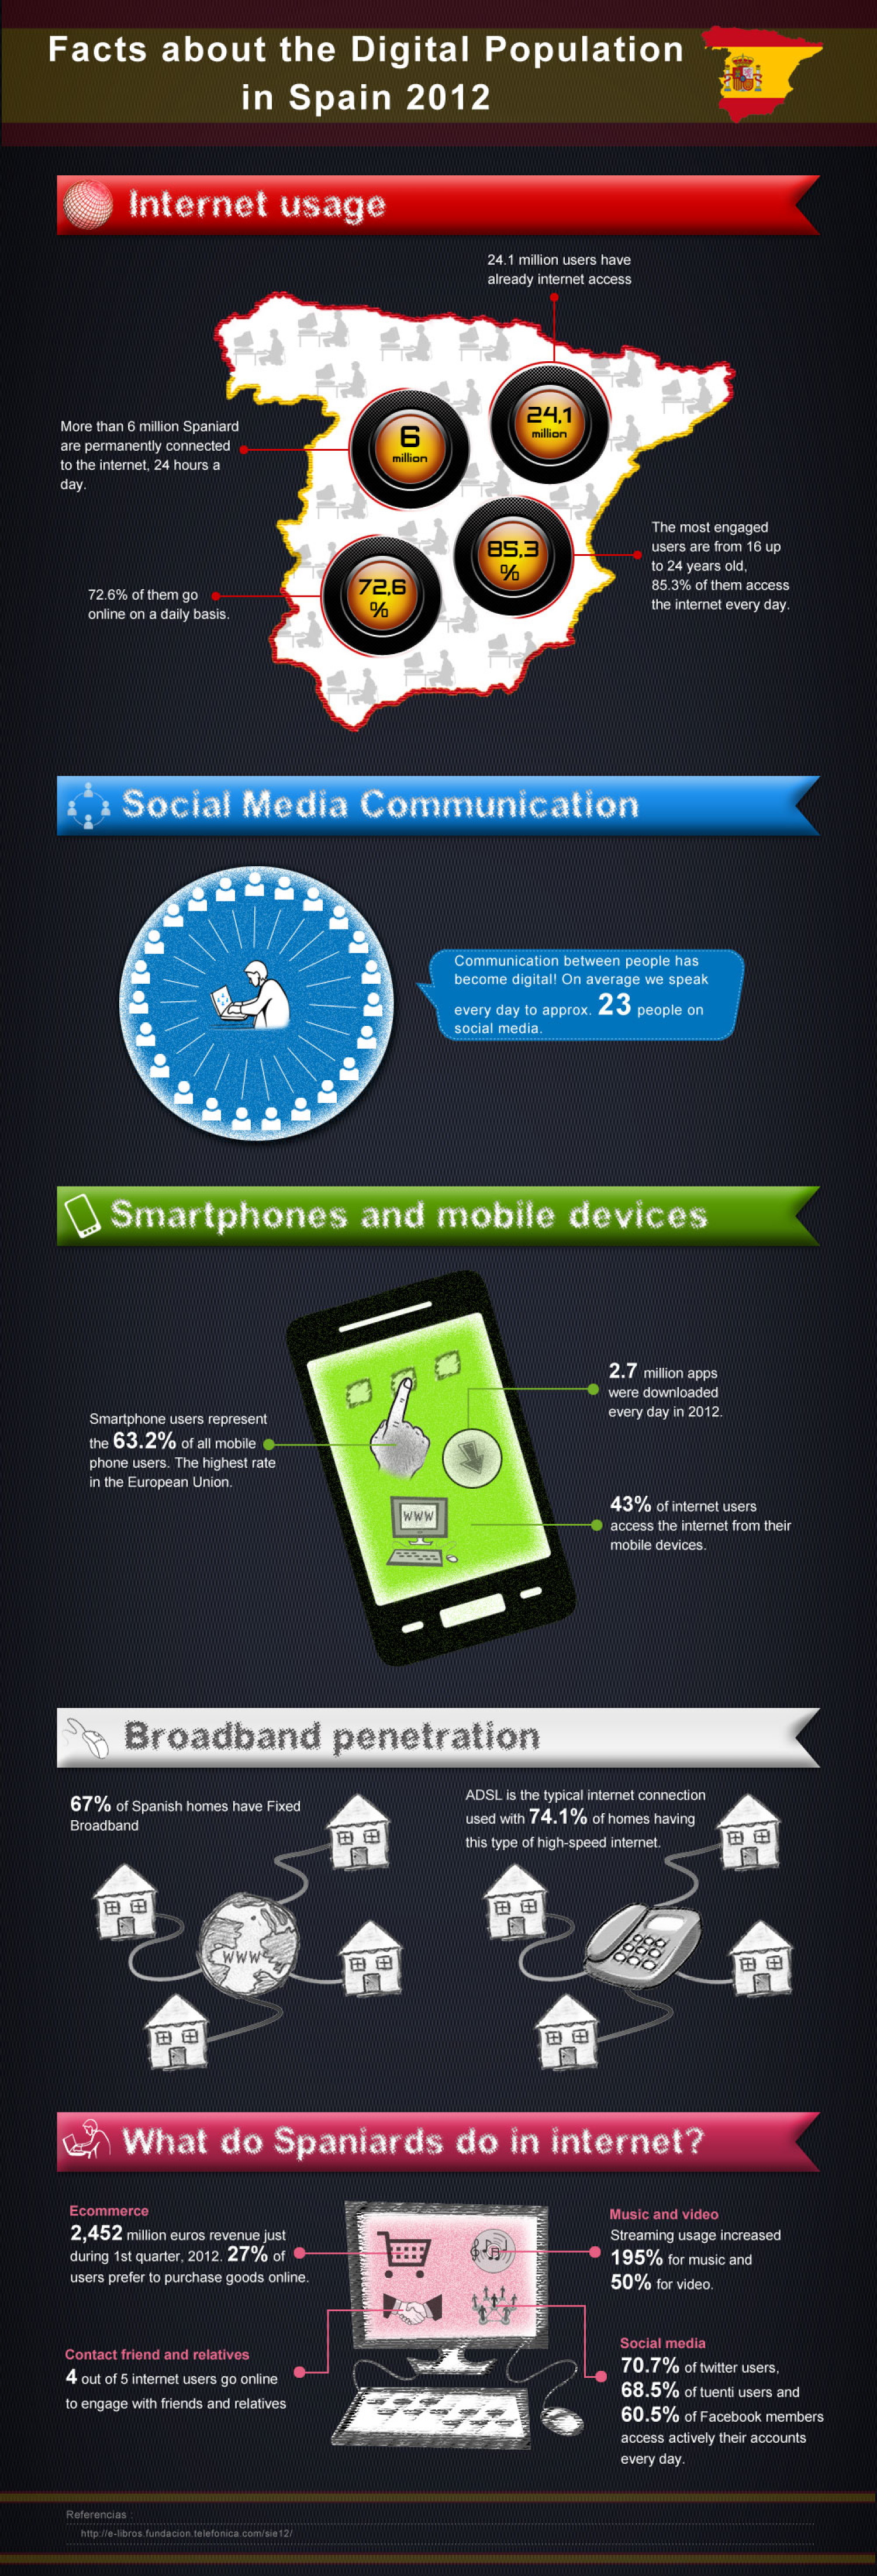 Facts about the Digital Population in Spain 2012 Infographic